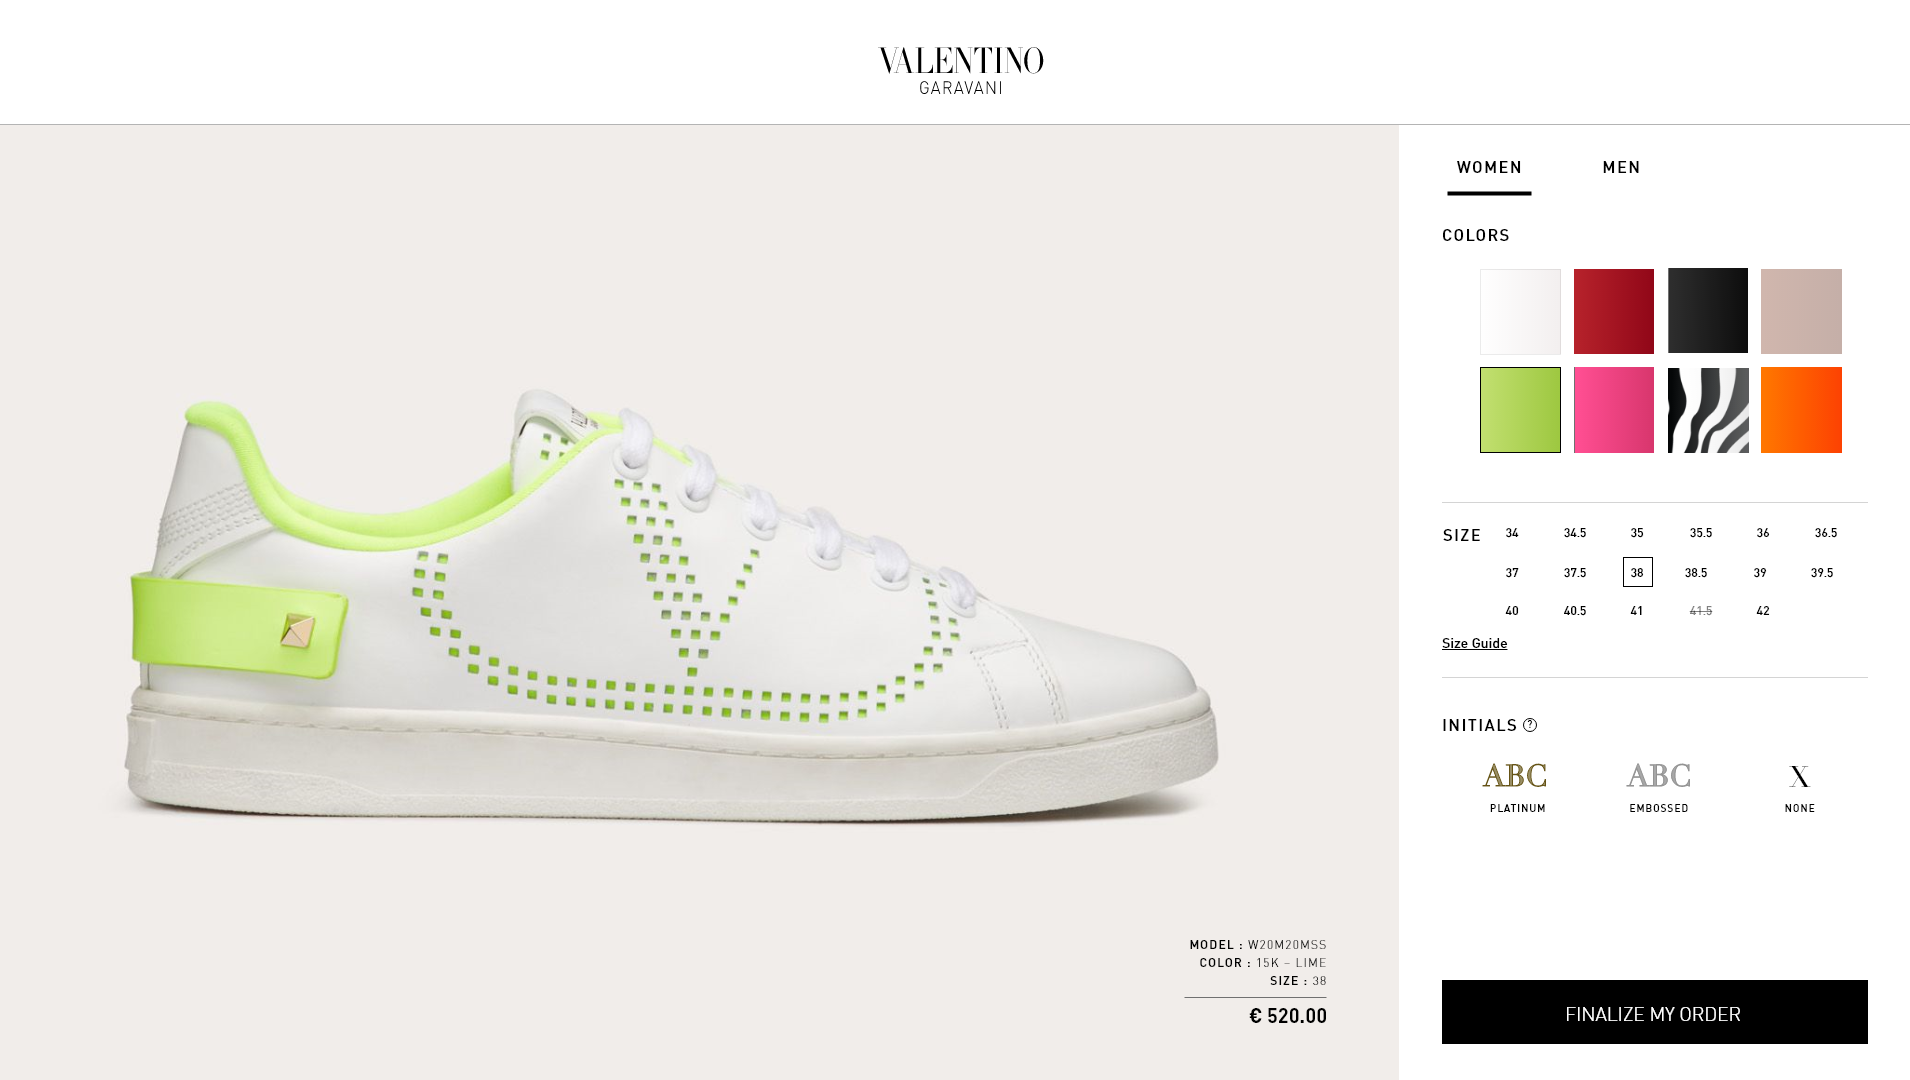 3D shoe Configurator, 3D shoes, Photorealistic 3d visuals of shoes, Valentino